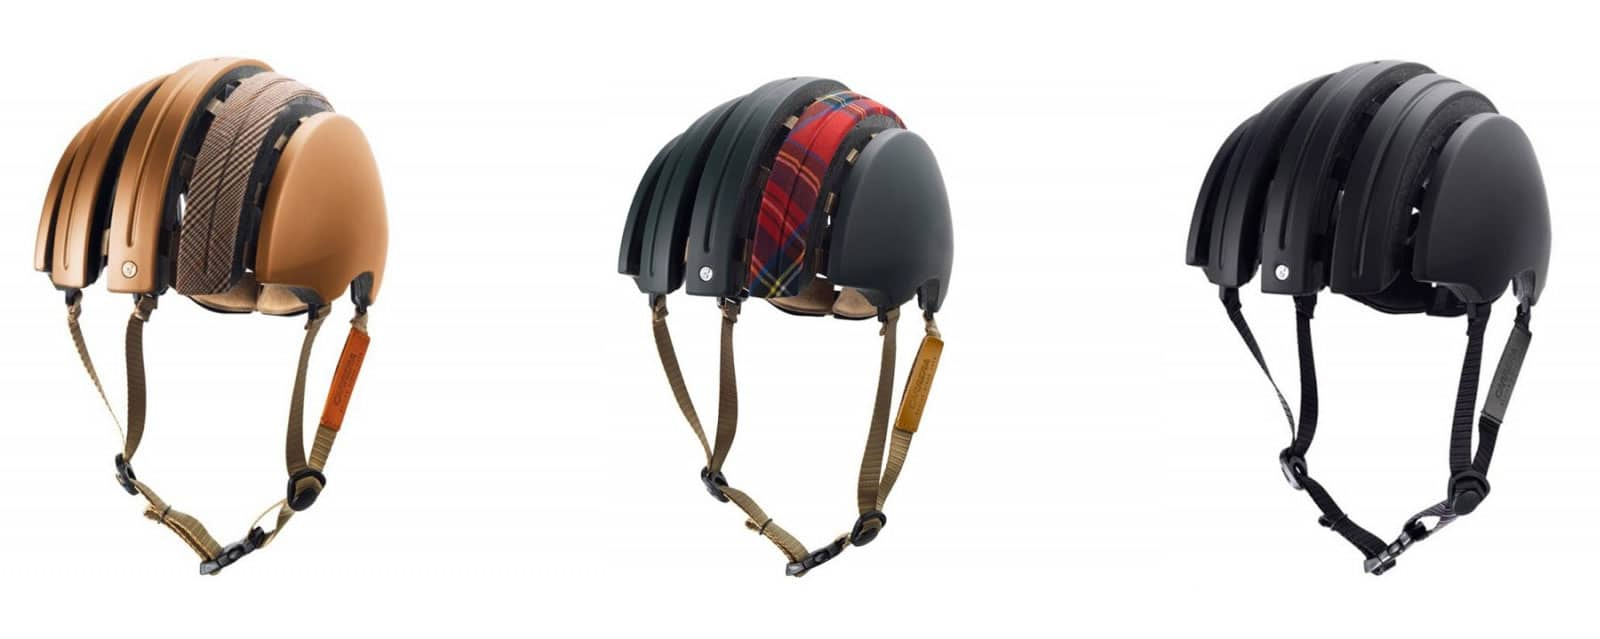 ae426311e35 Casque Pliable Brooks Carrera JB